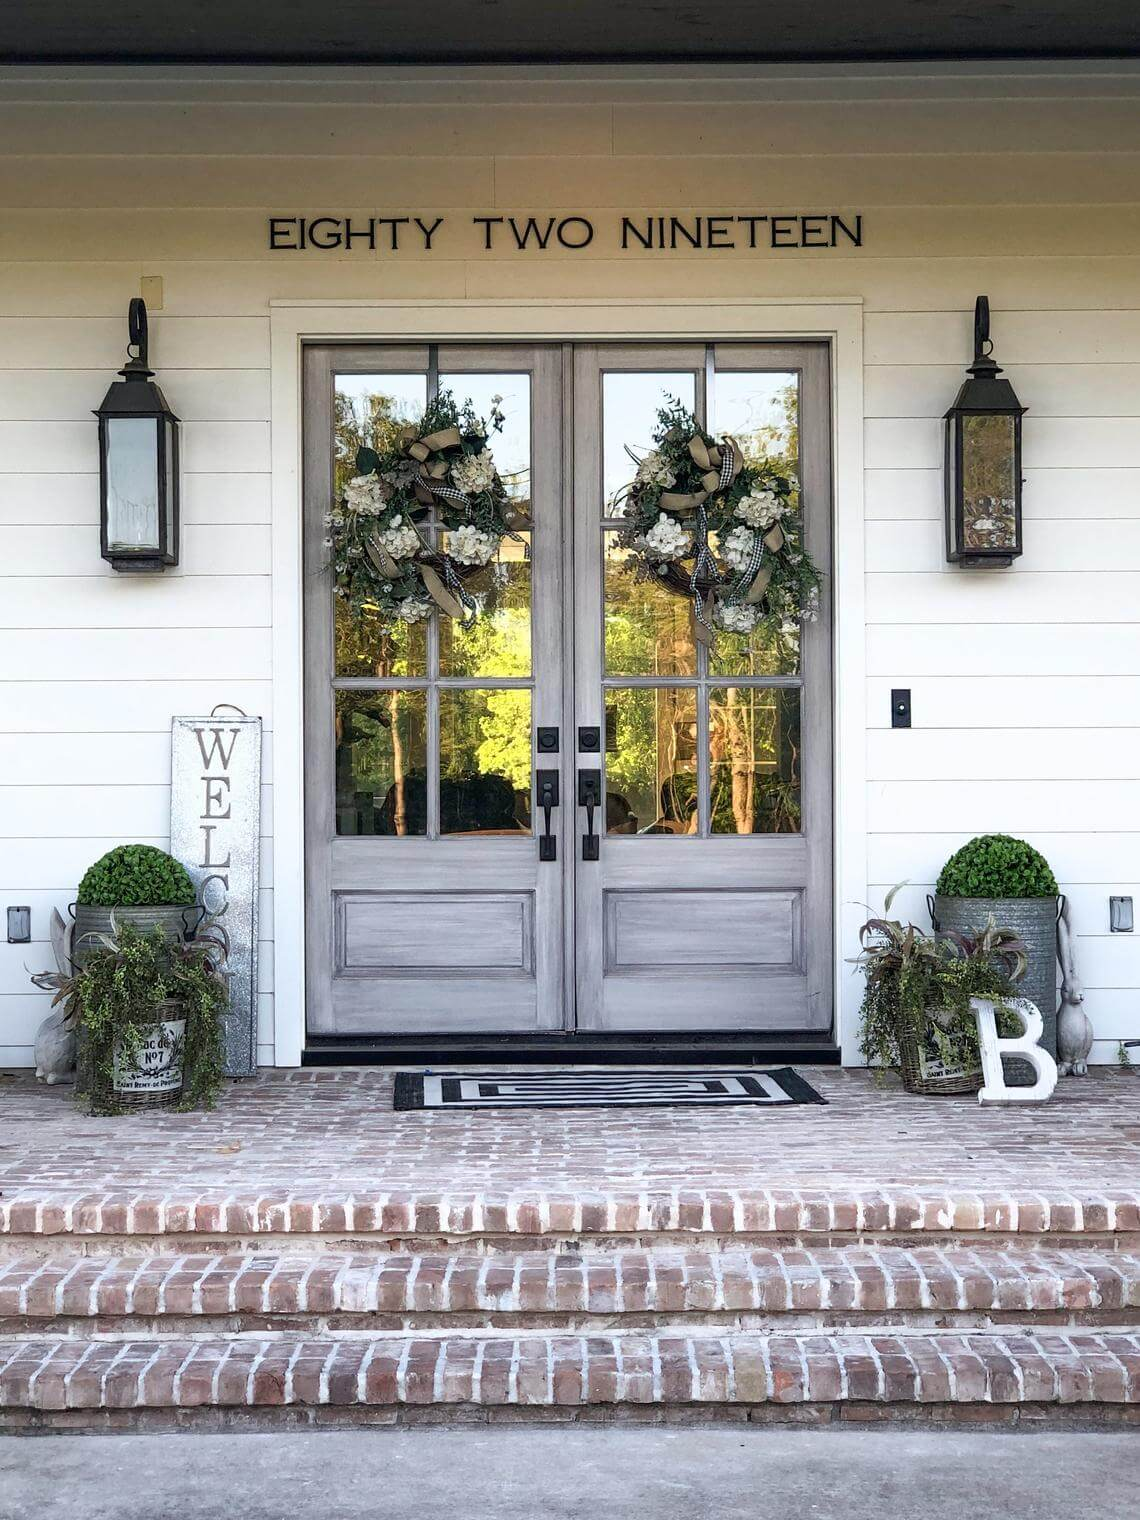 Chiseled Large House Number Letters